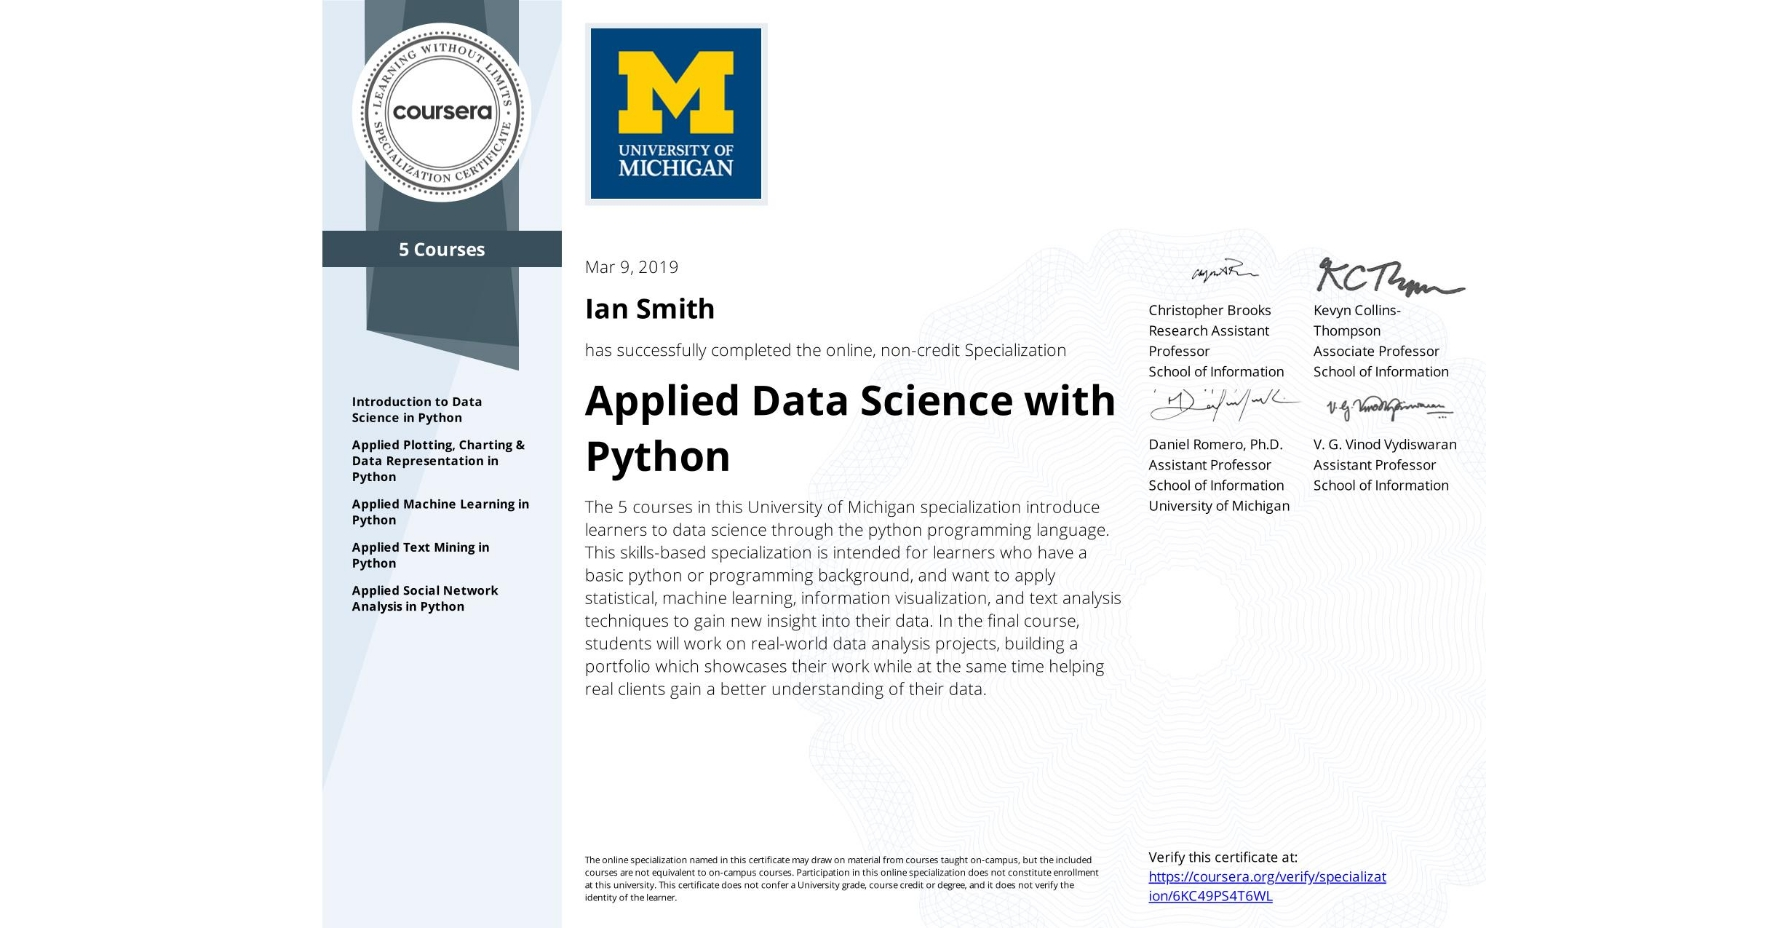 View certificate for Ian Smith, Applied Data Science with Python, offered through Coursera. The 5 courses in this University of Michigan specialization introduce learners to data science through the python programming language. This skills-based specialization is intended for learners who have a basic python or programming background, and want to apply statistical, machine learning, information visualization, and text analysis techniques to gain new insight into their data. In the final course, students will work on real-world data analysis projects, building a portfolio which showcases their work while at the same time helping real clients gain a better understanding of their data.